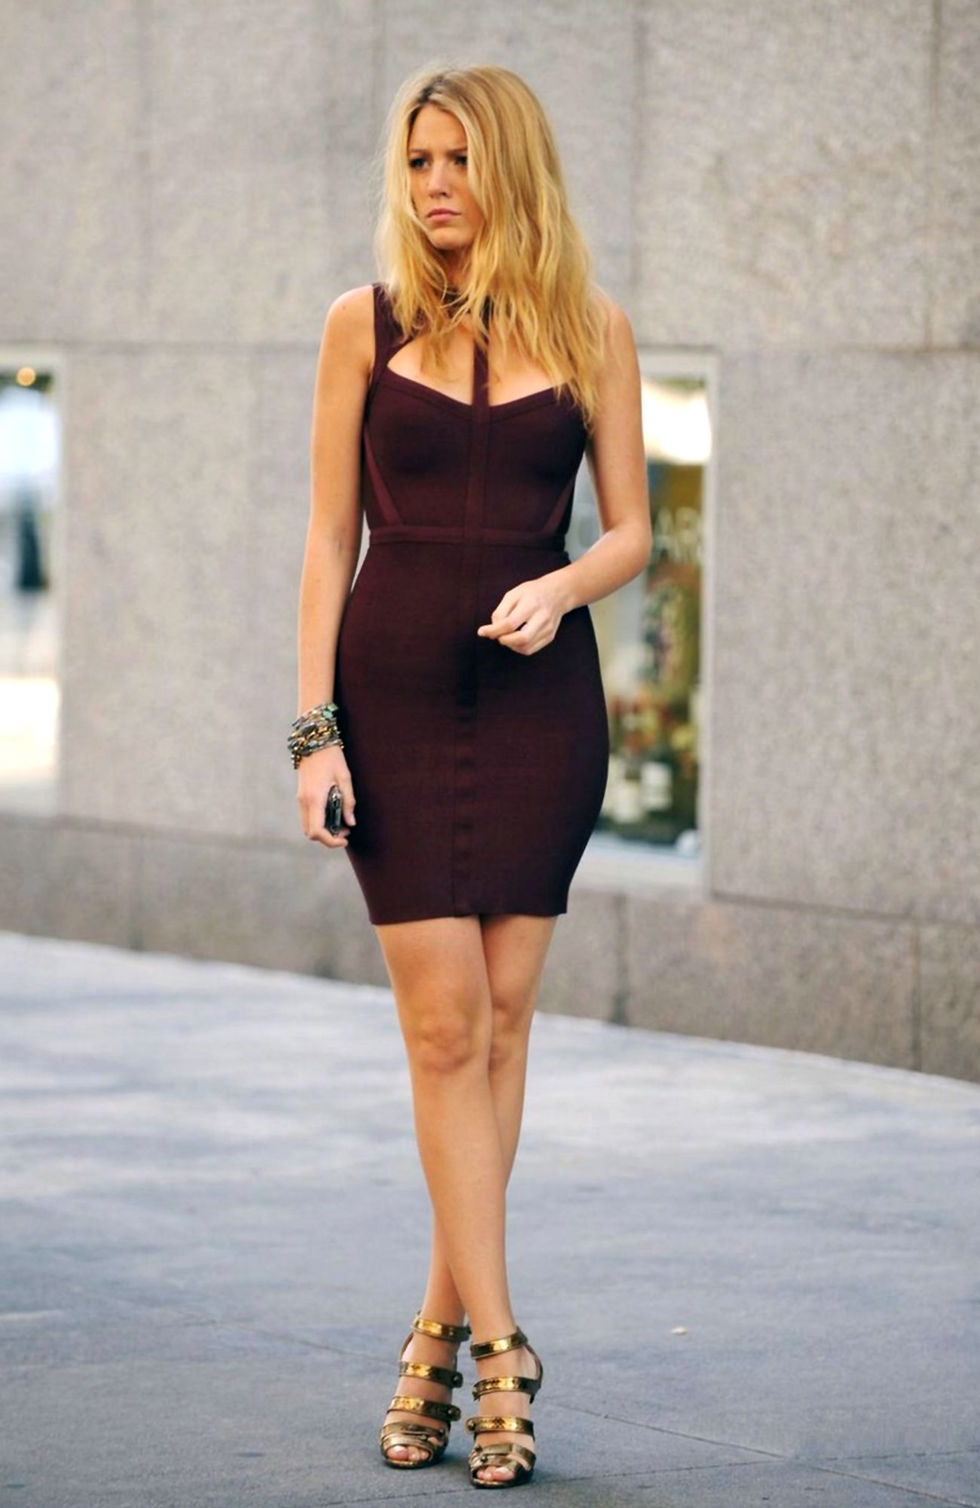 blake-lively-candids-on-the-set-of-gossip-girl-02